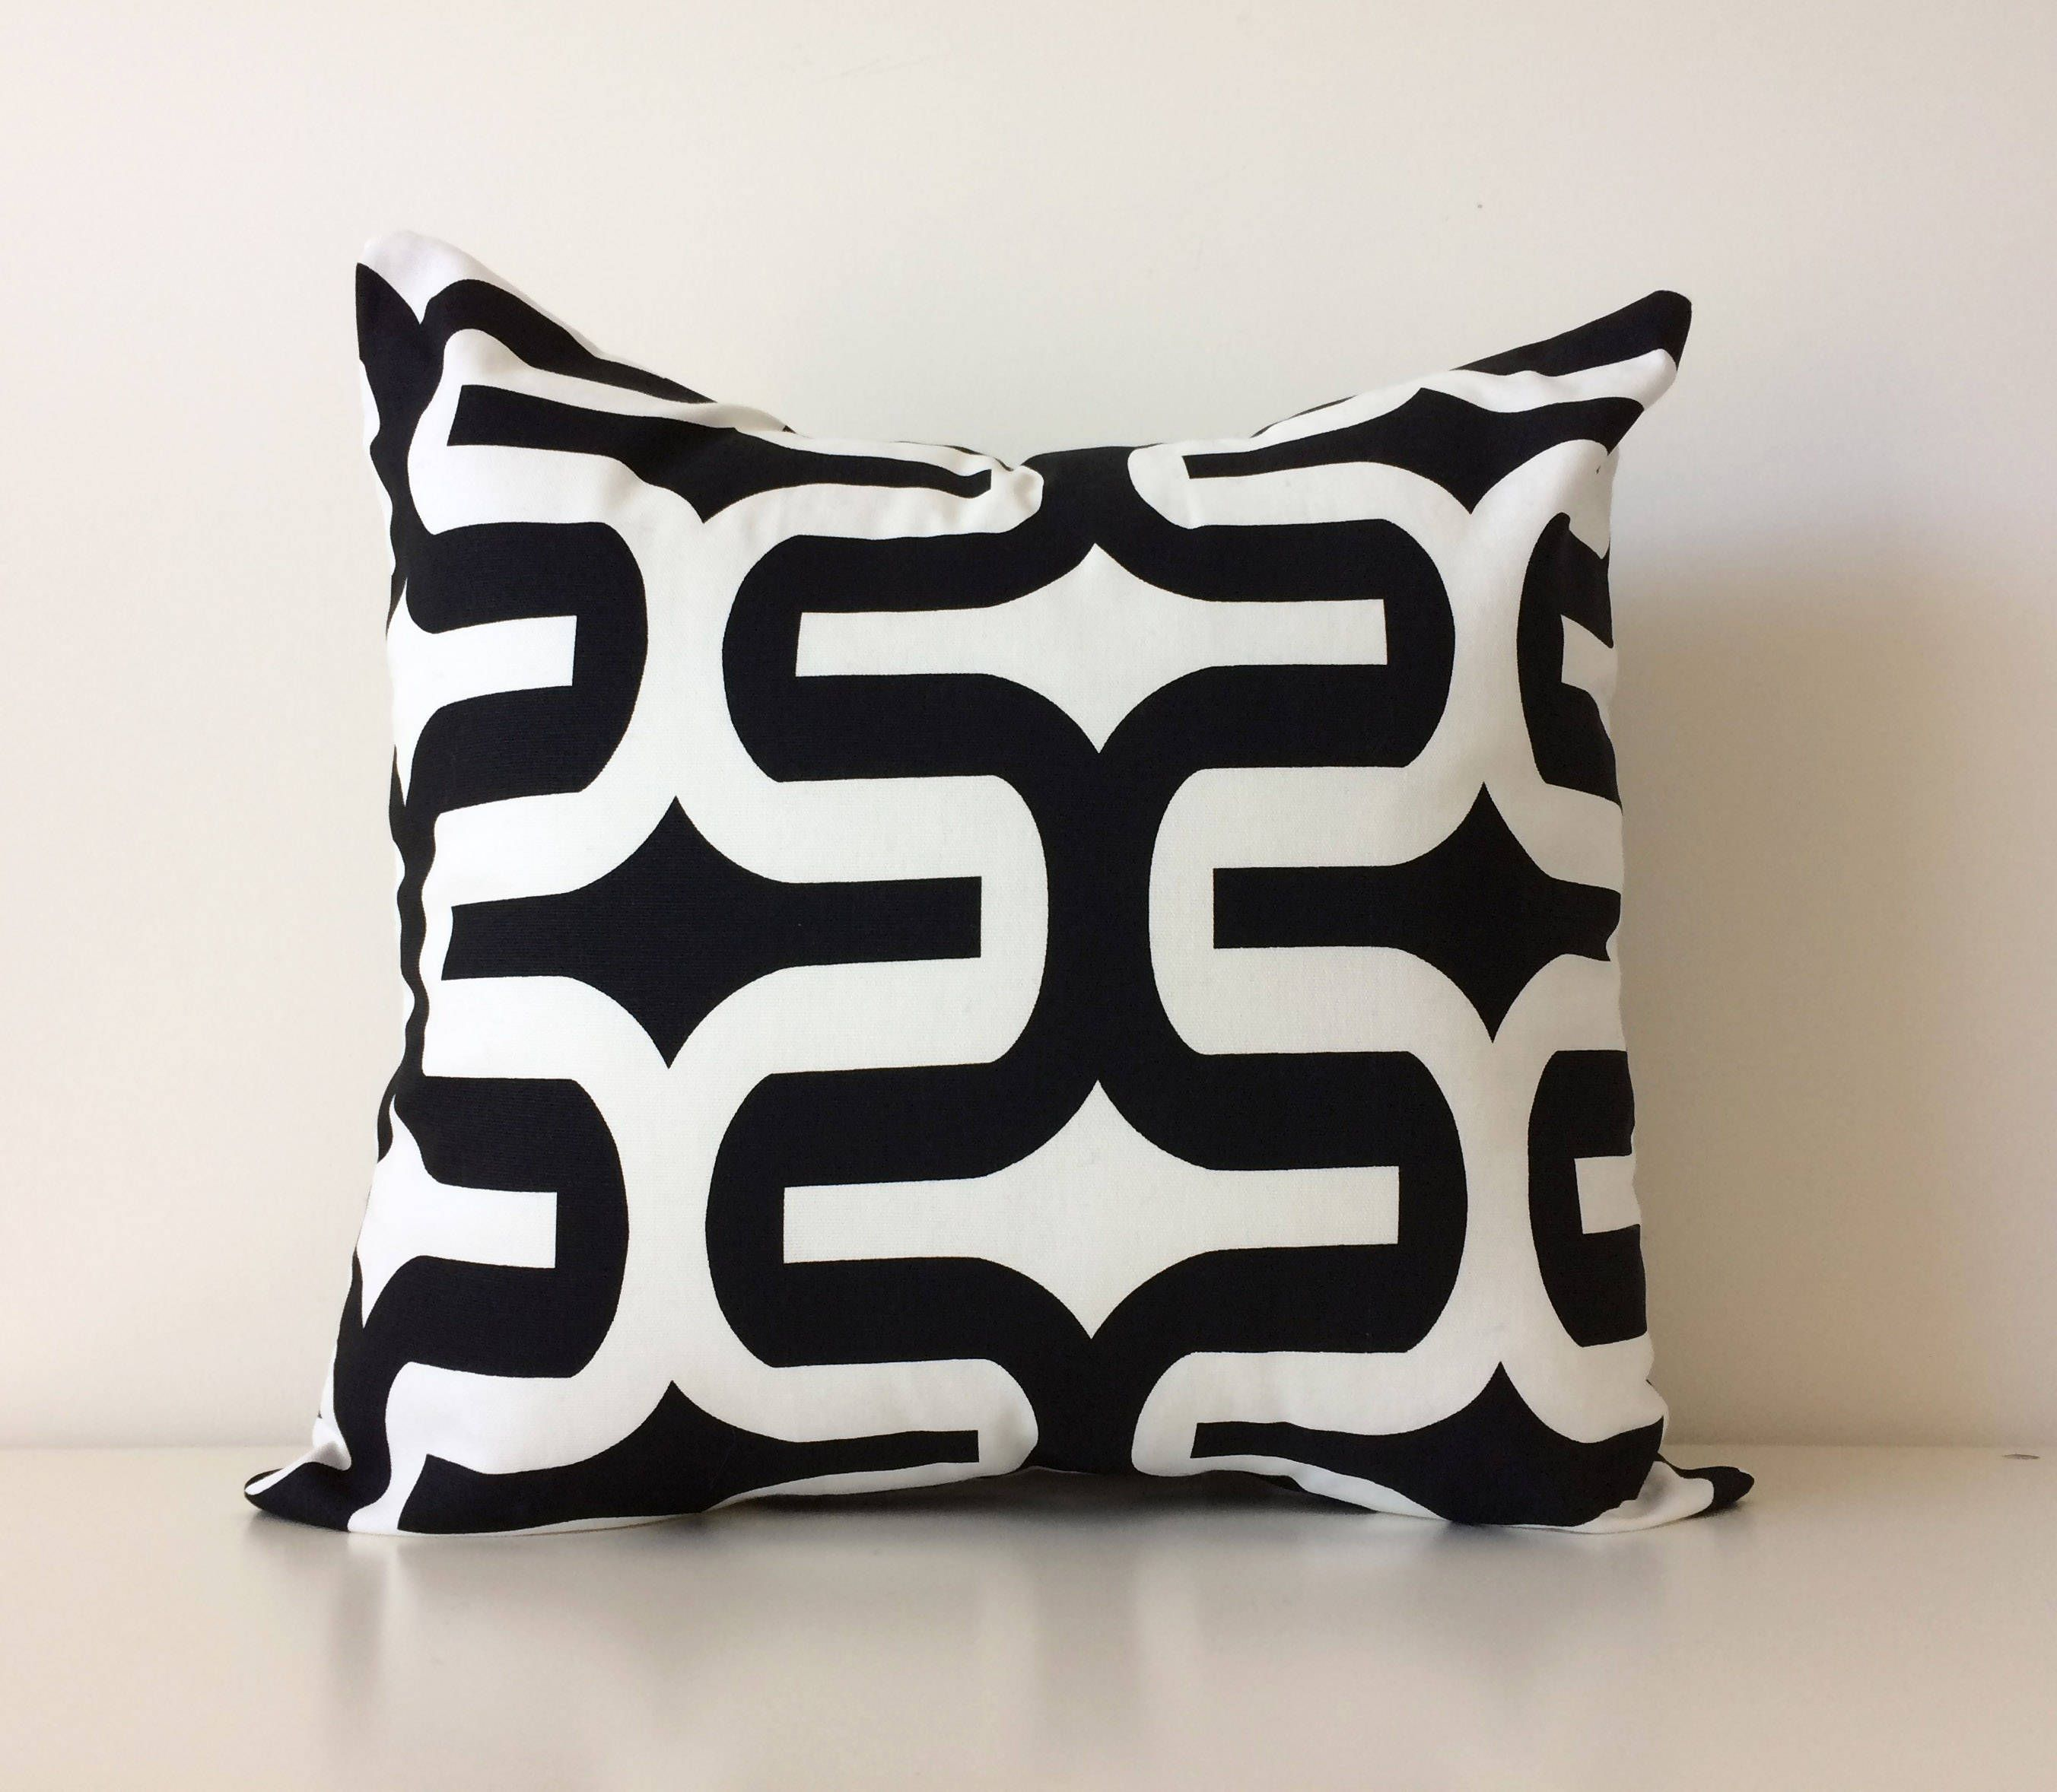 Geometric black and white pillow cover 20x20 mod contemporary accent pillow premier prints embrace black cushion cover by blackcatmeowdesigns on